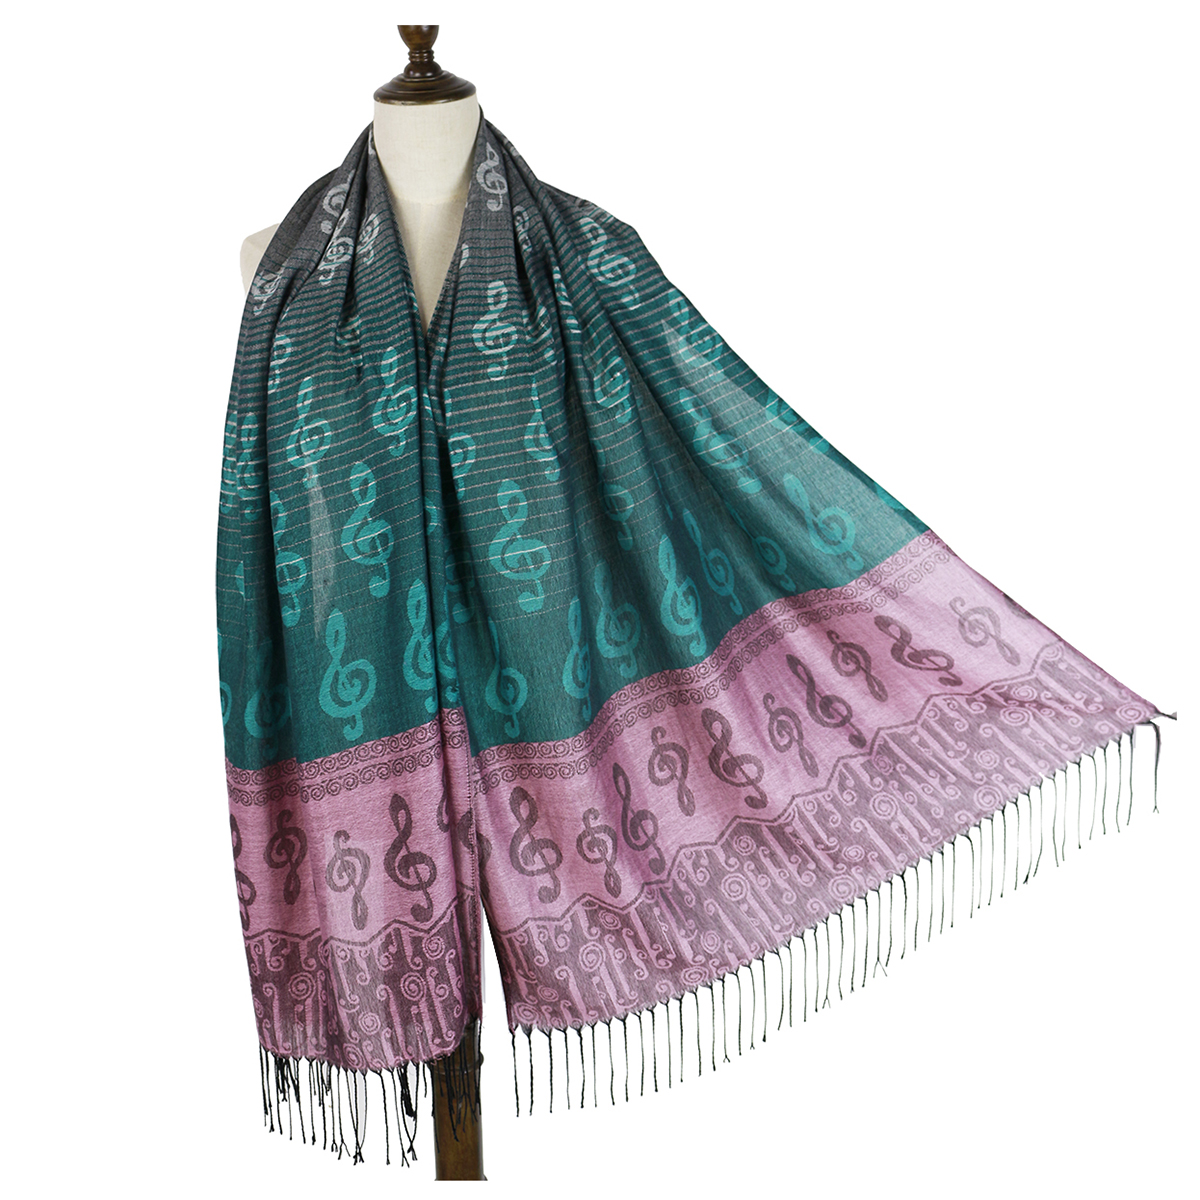 scarf   female fringe music note G-clefs fashion Jacquard   scarf   pashmina shawl   wrap   winter   scarf   woven shawls bandana